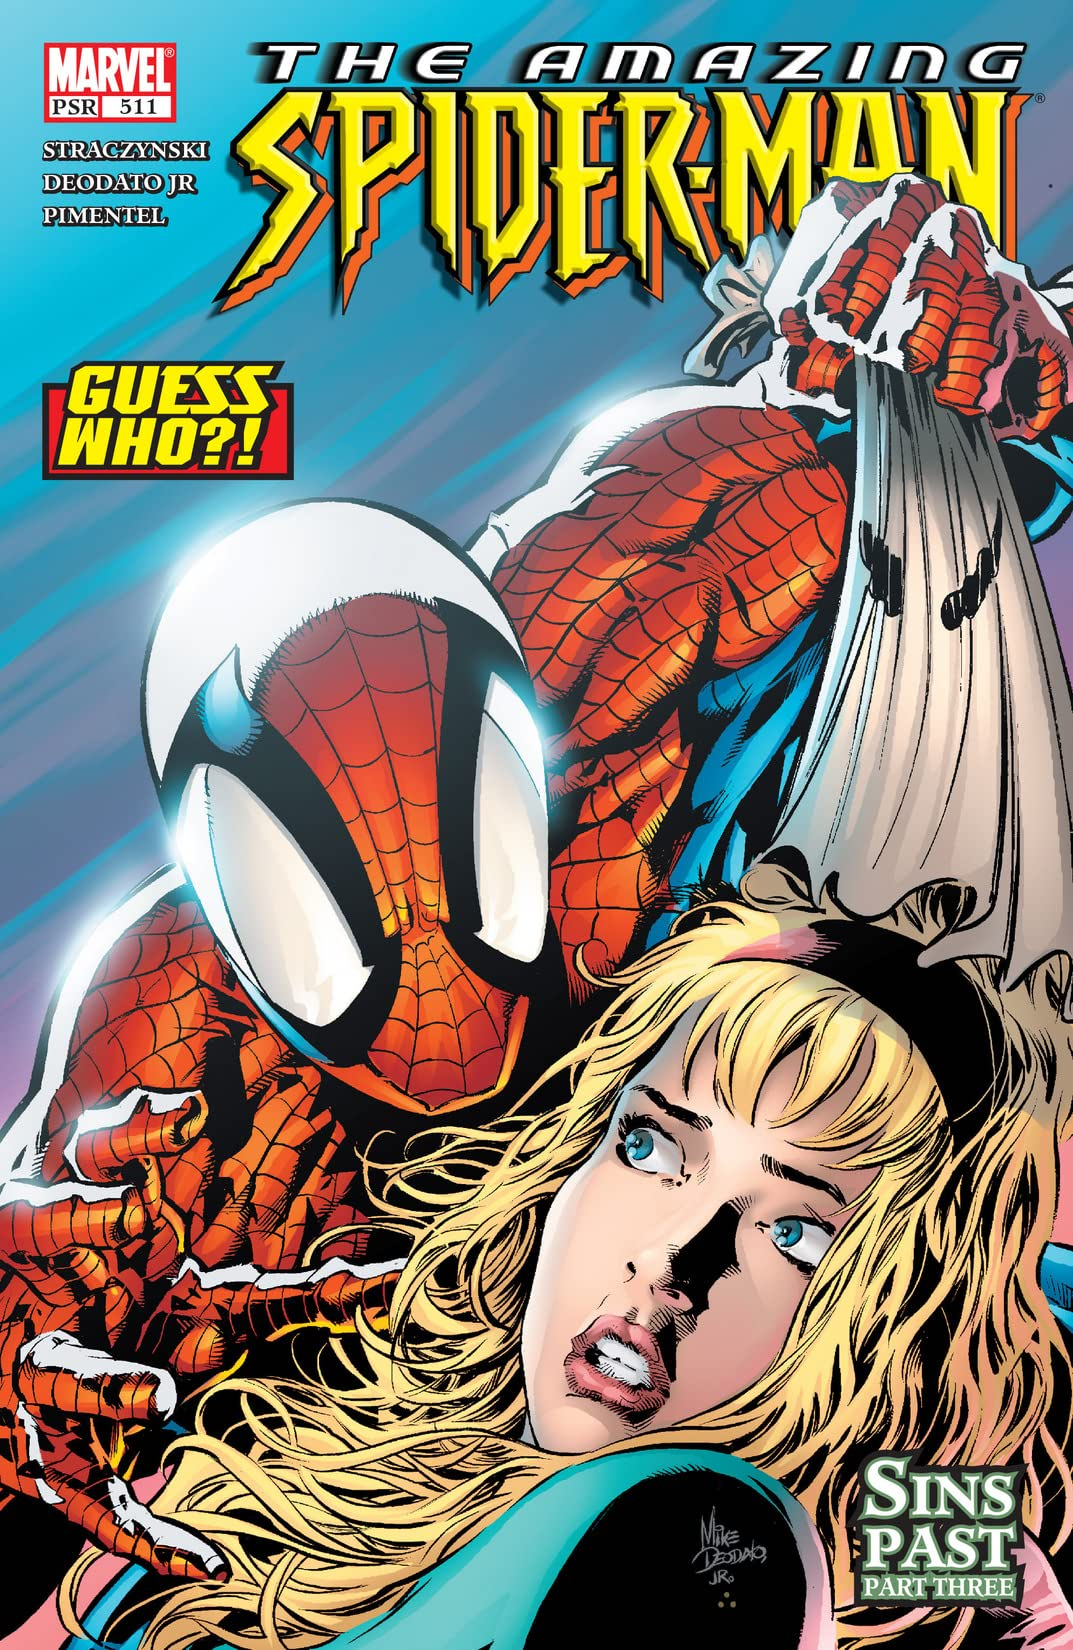 Amazing Spider-Man (1999-2013) #511